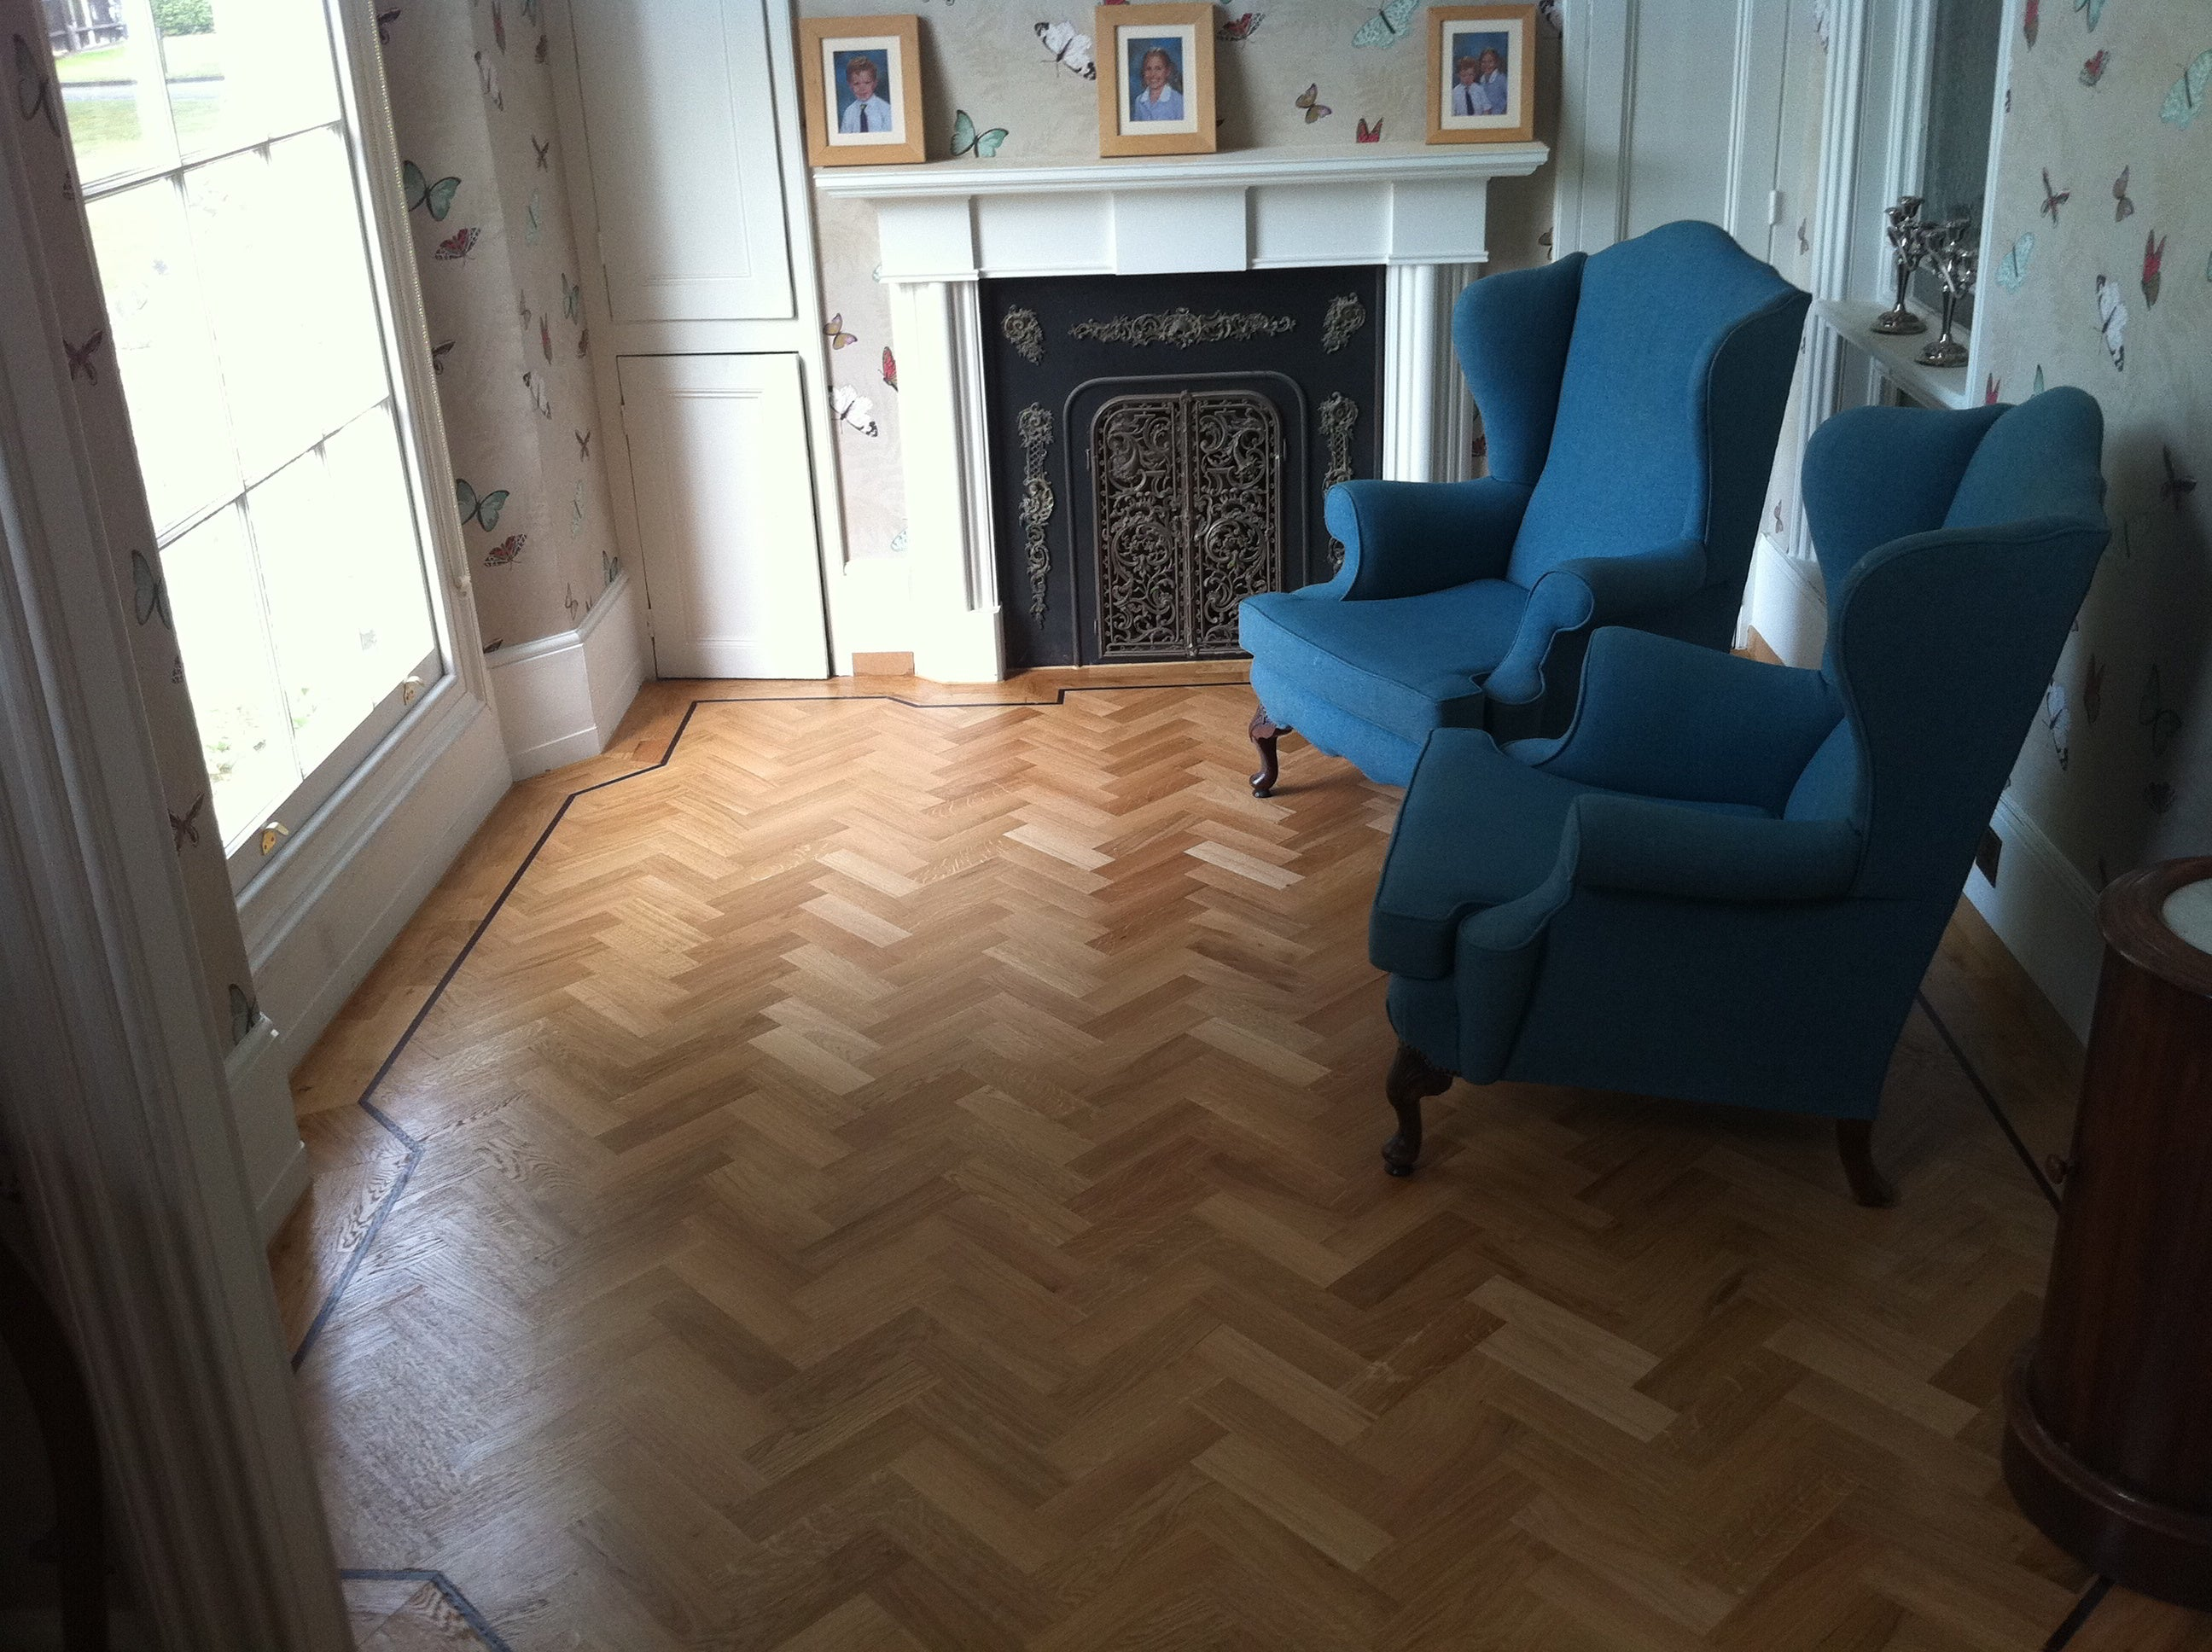 parquet flooring in traditional room